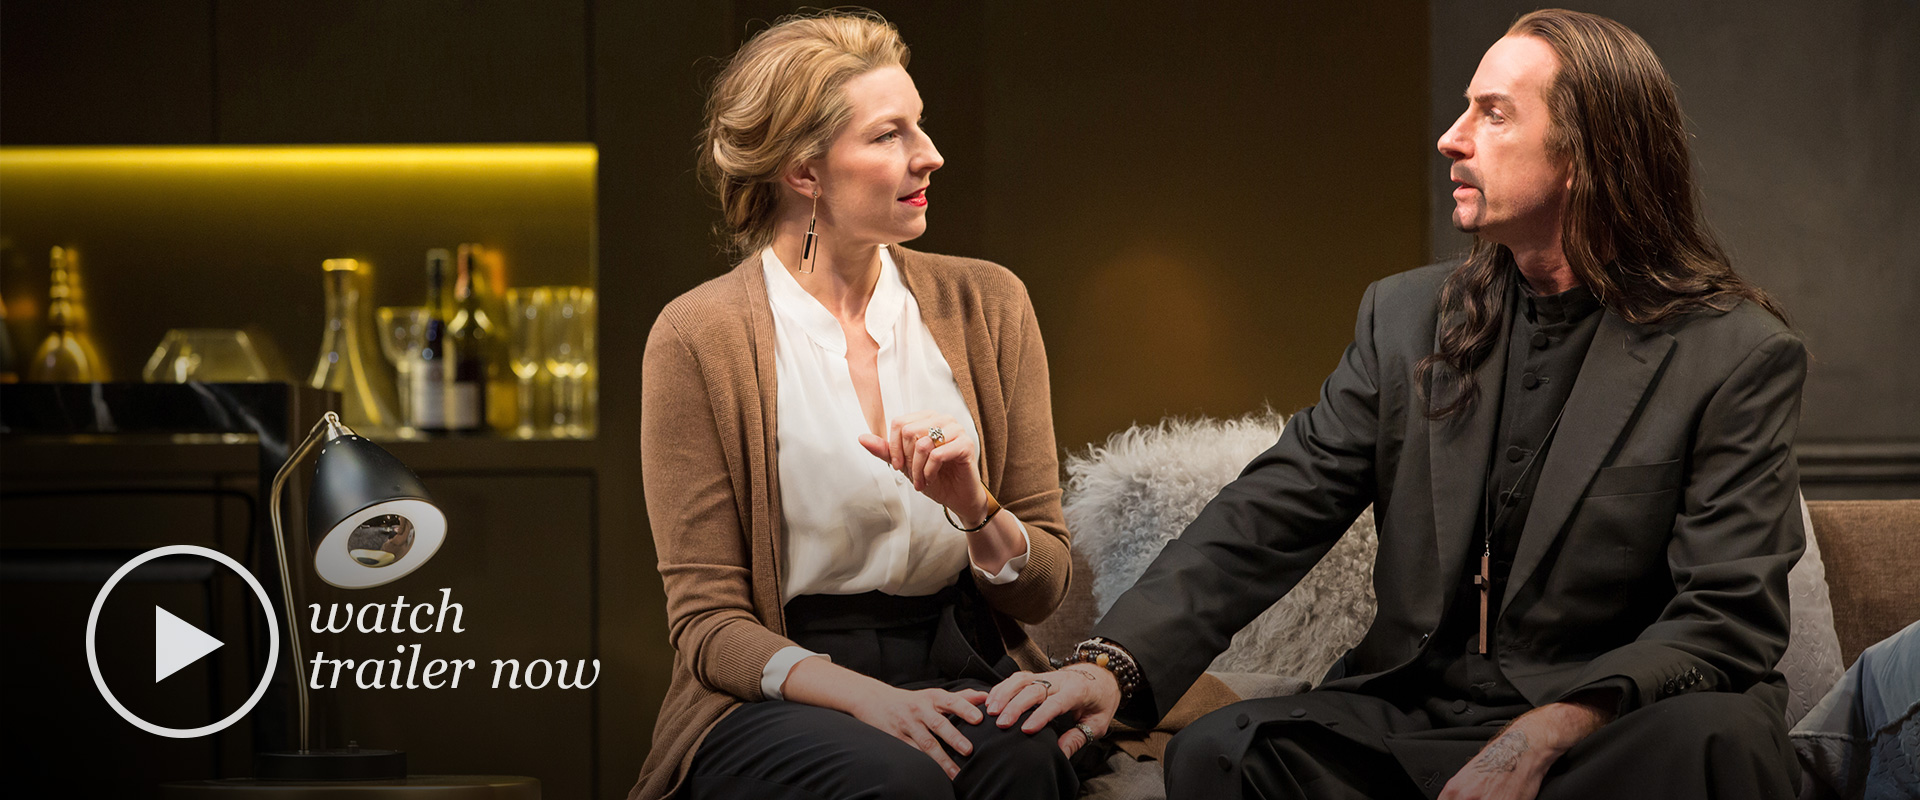 Production image from Tartuffe featuring Tom Rooney and Maeve Beaty